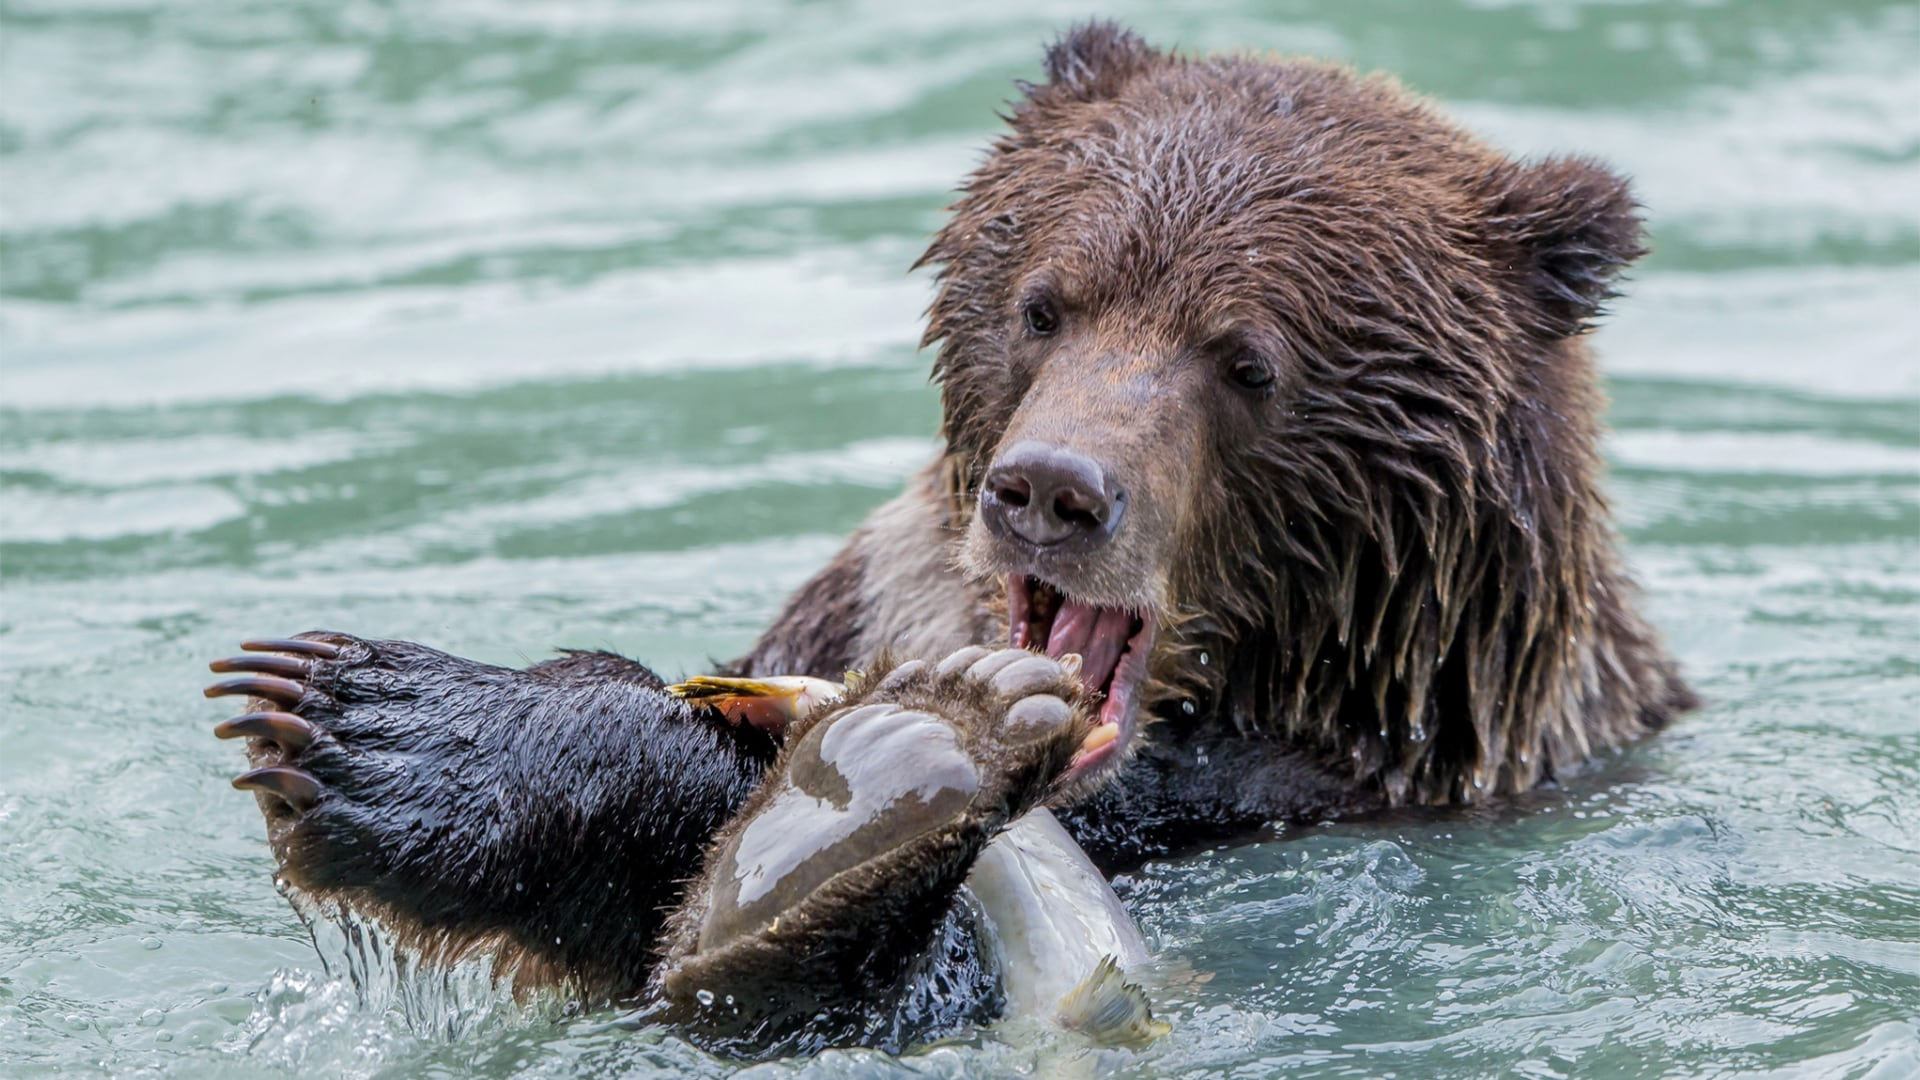 A grizzly bear snags a fish in Alaska.